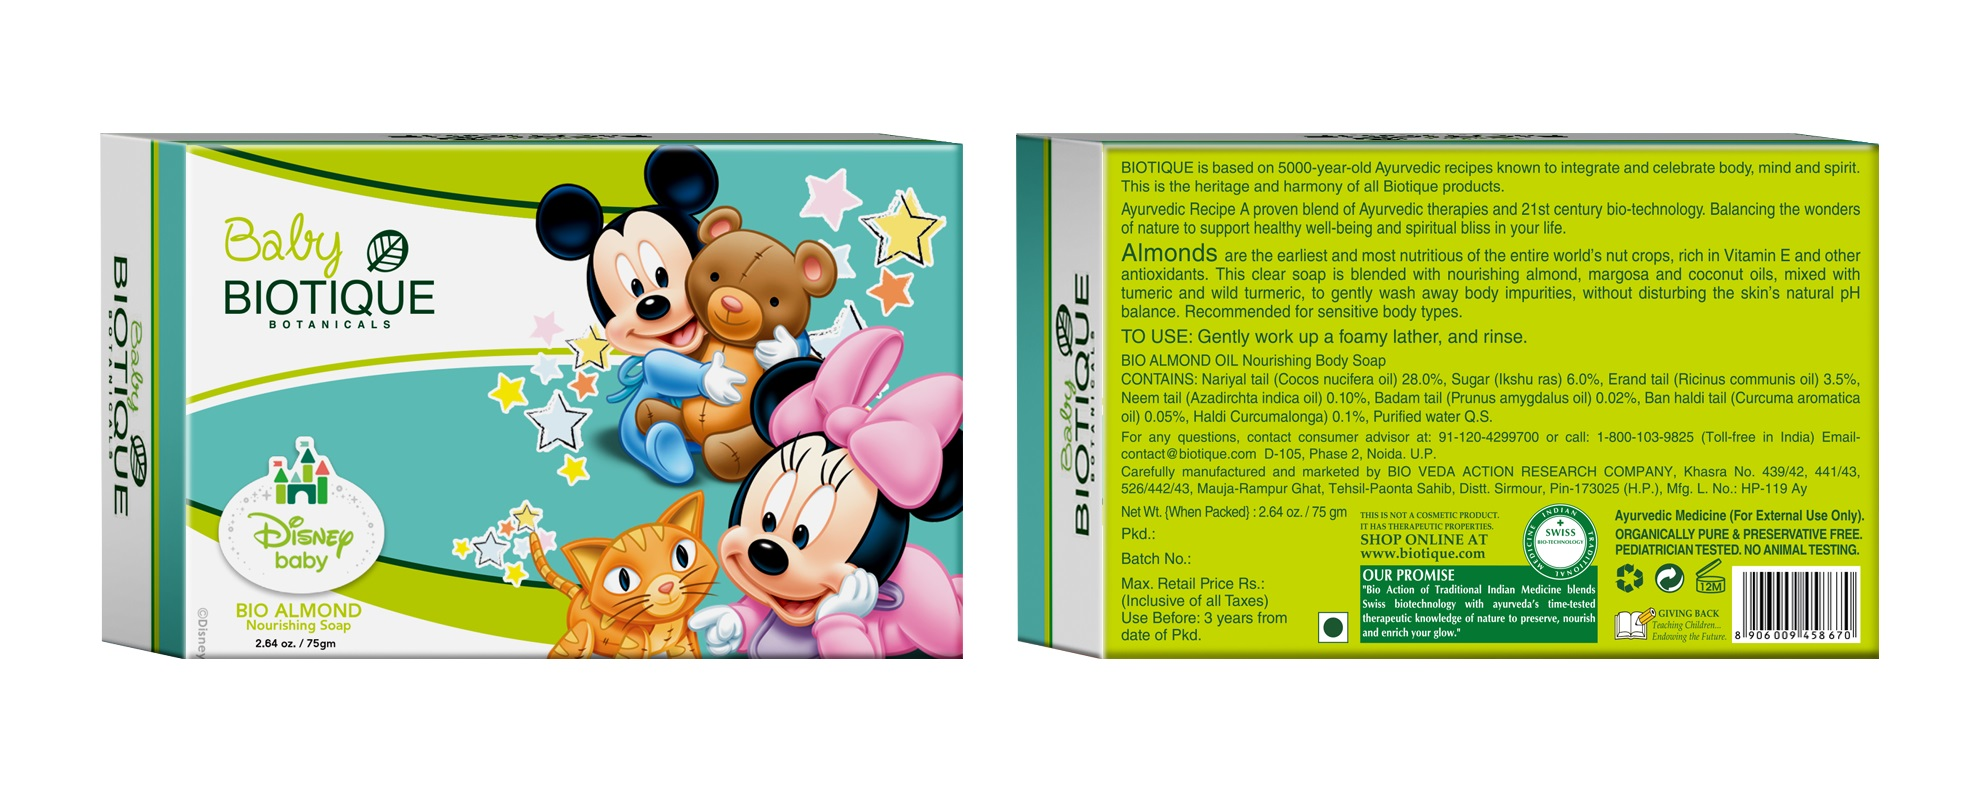 Biotique Disney Baby Boy Bio Almond Nourishing Soap  available at Nykaa for Rs.41